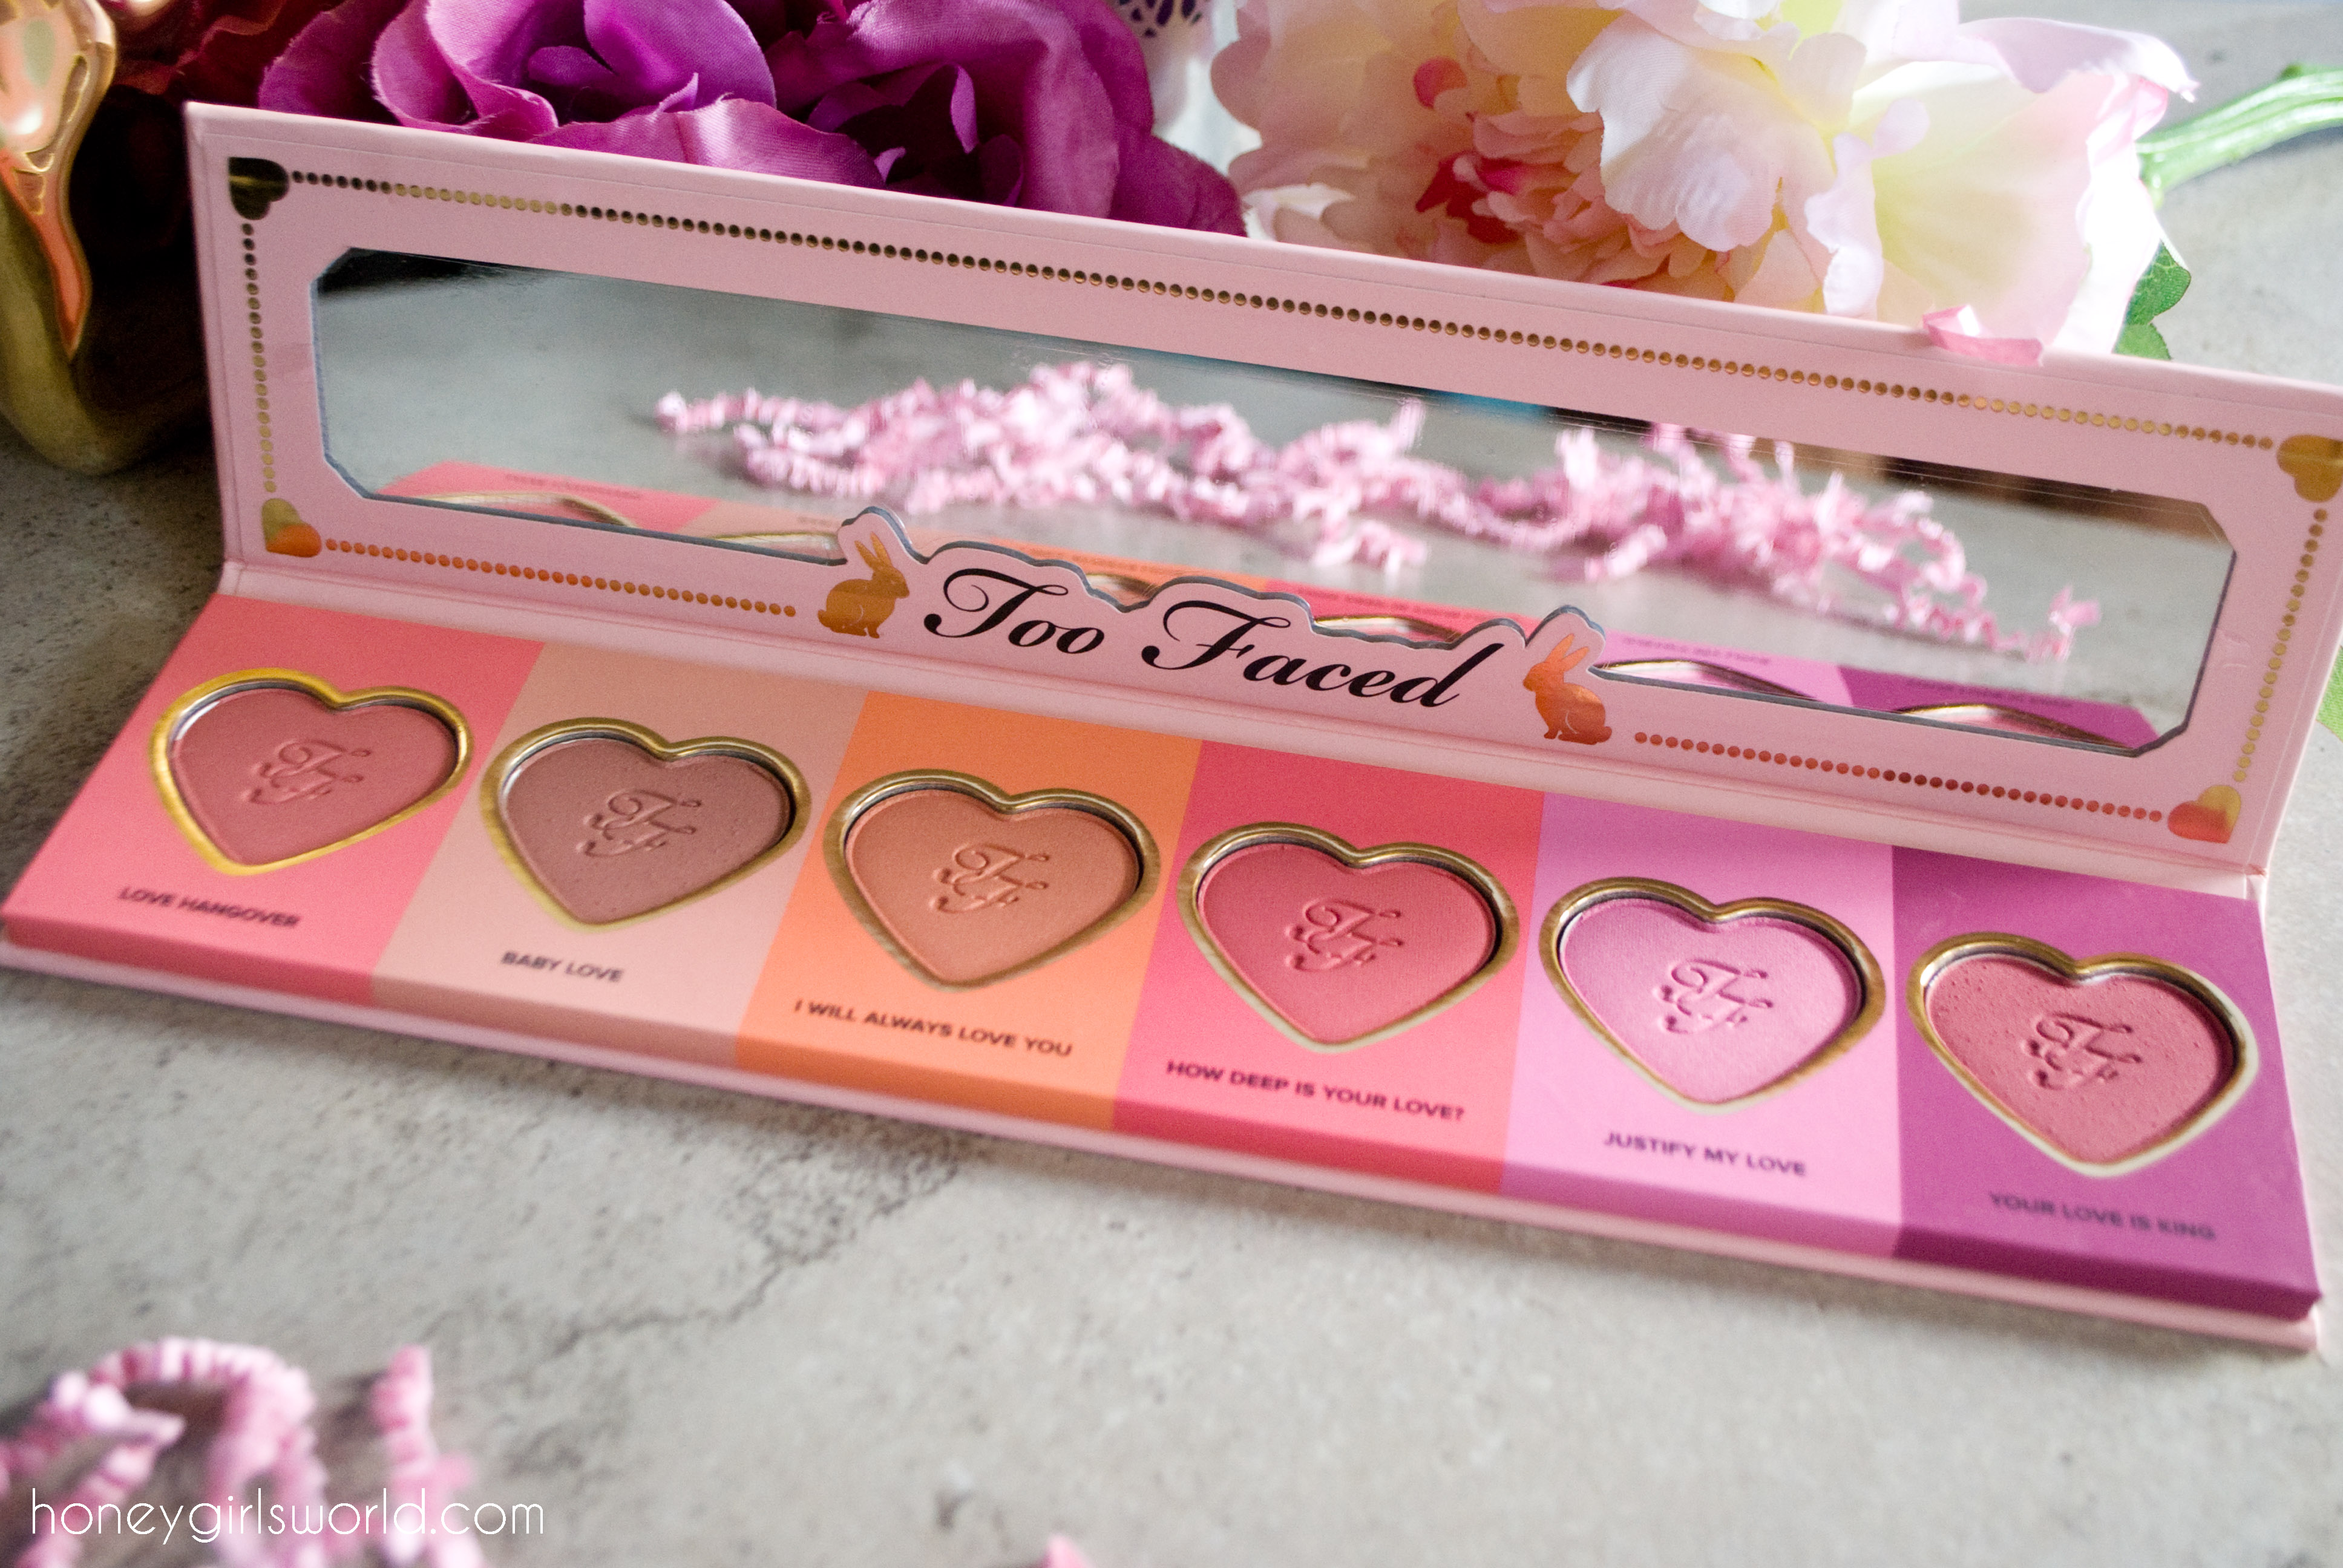 Too Faced Love Flush Blush Wardrobe Palette – Review & Swatches